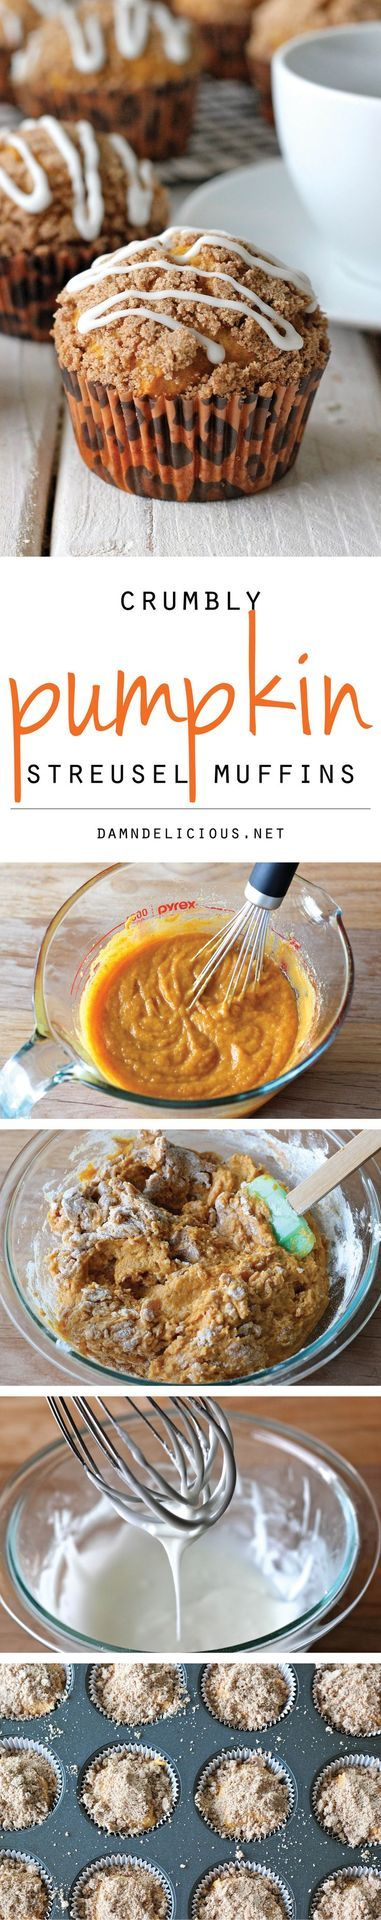 Pumpkin Streusel Muffins - Pumpkin bread in muffin form with an oh-so-crumbly streusel topped with a drizzled vanilla glaze!